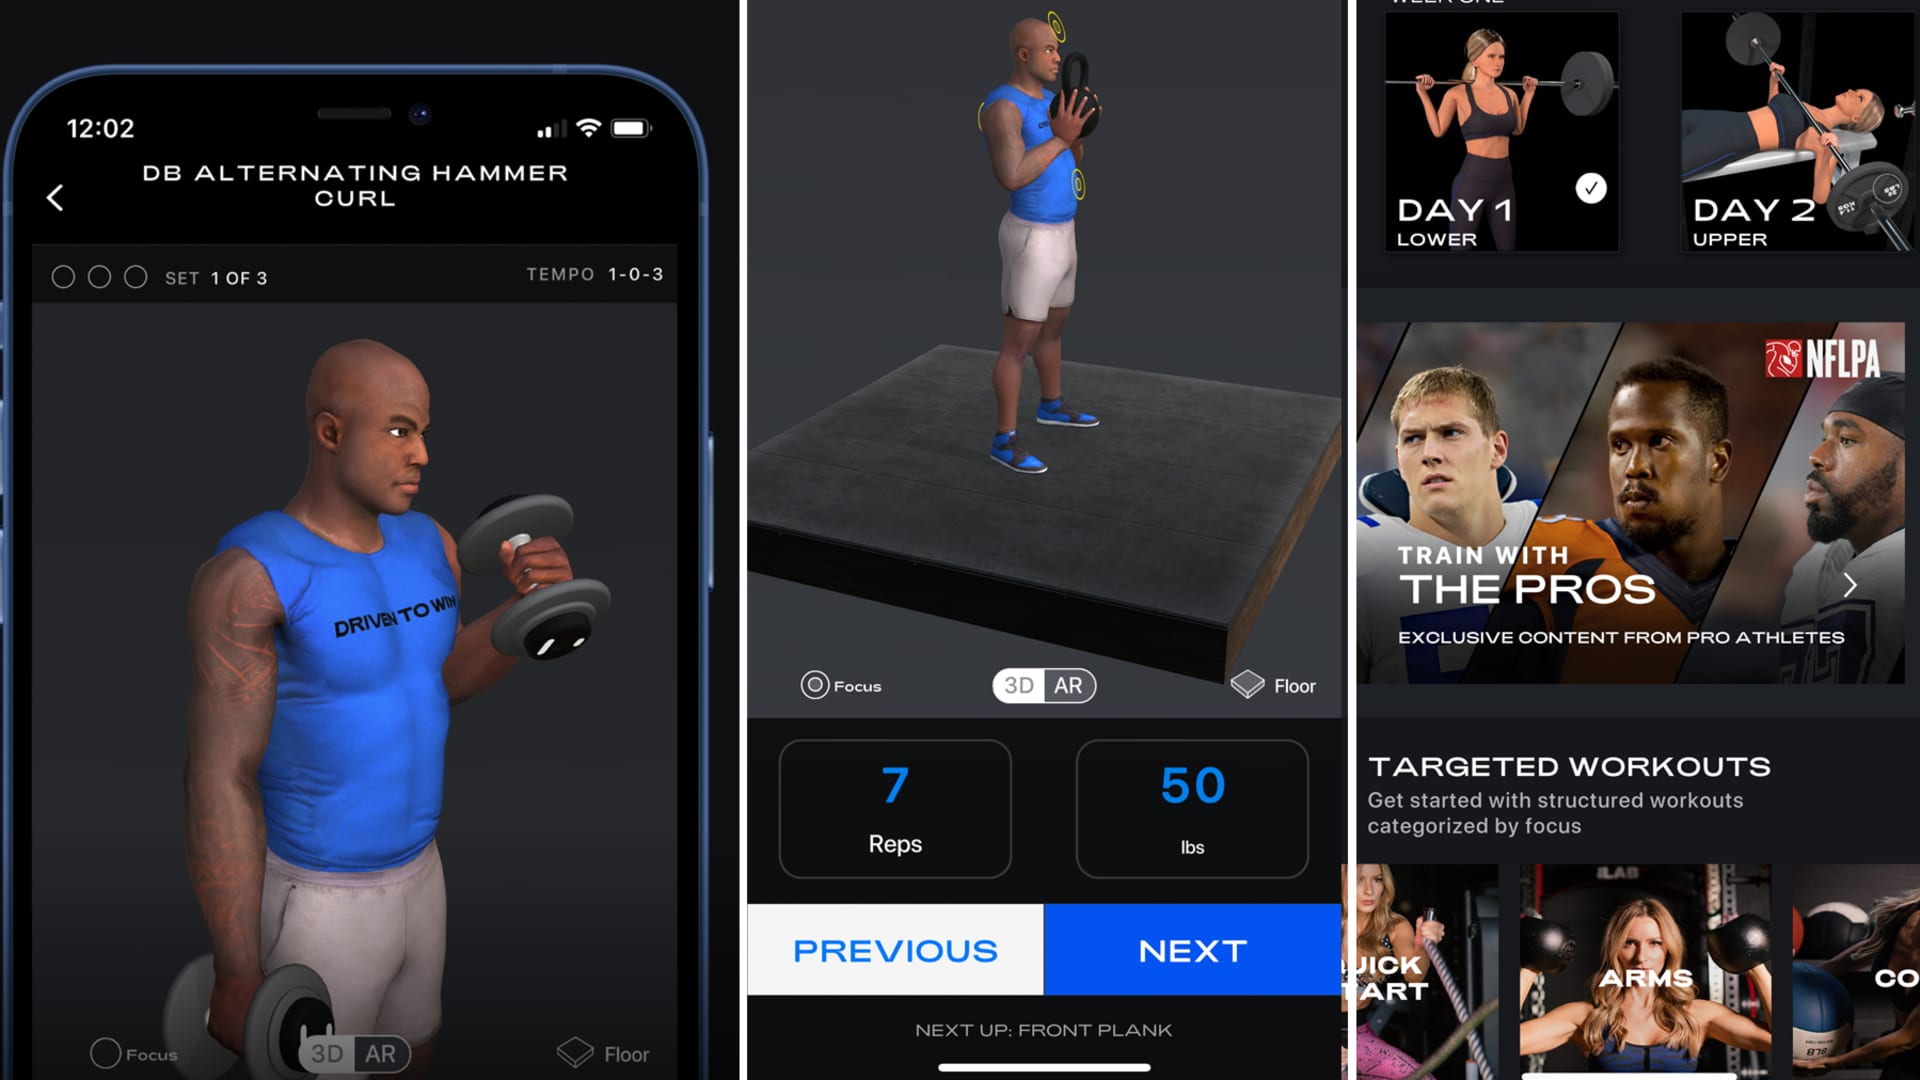 Former NFL linebacker DeMarcus Ware announcing the launch of Driven To Win (D2W), a new fitness app available for download on the App Store.